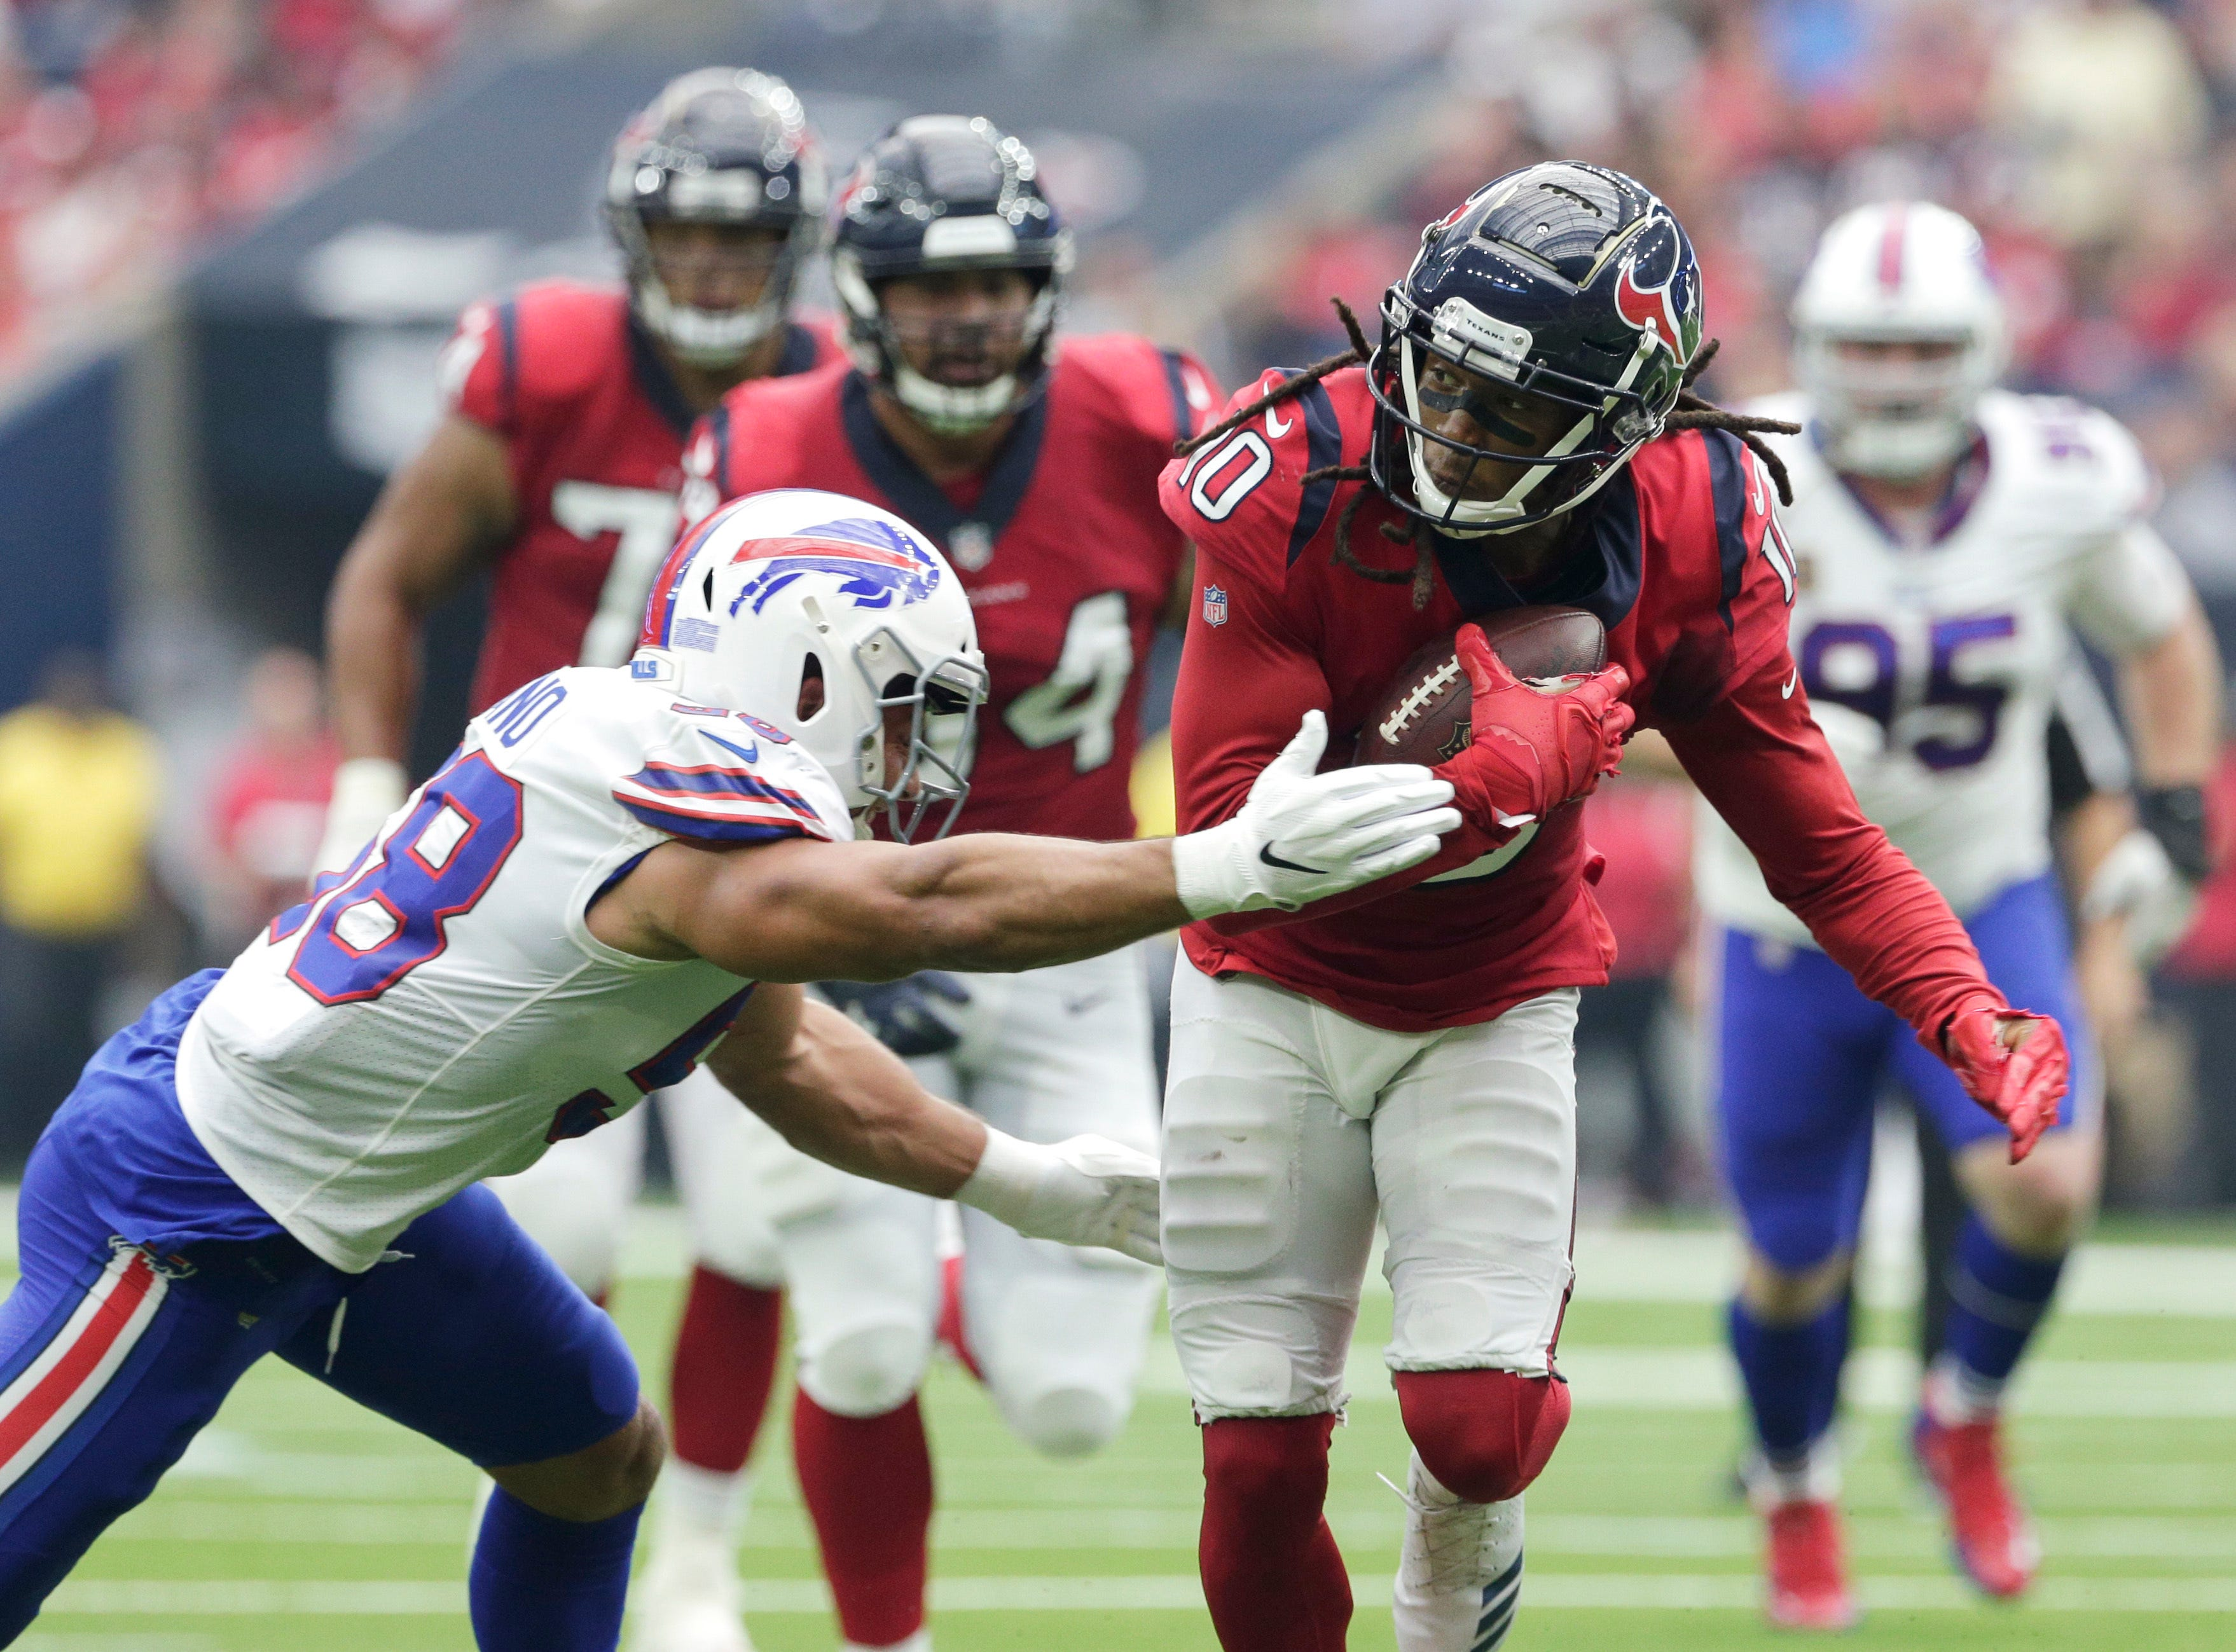 Houston Texans wide receiver DeAndre Hopkins (10) is hit by Buffalo Bills linebacker Matt Milano (58) during the first half of an NFL football game, Sunday, Oct. 14, 2018, in Houston. (AP Photo/Michael Wyke)